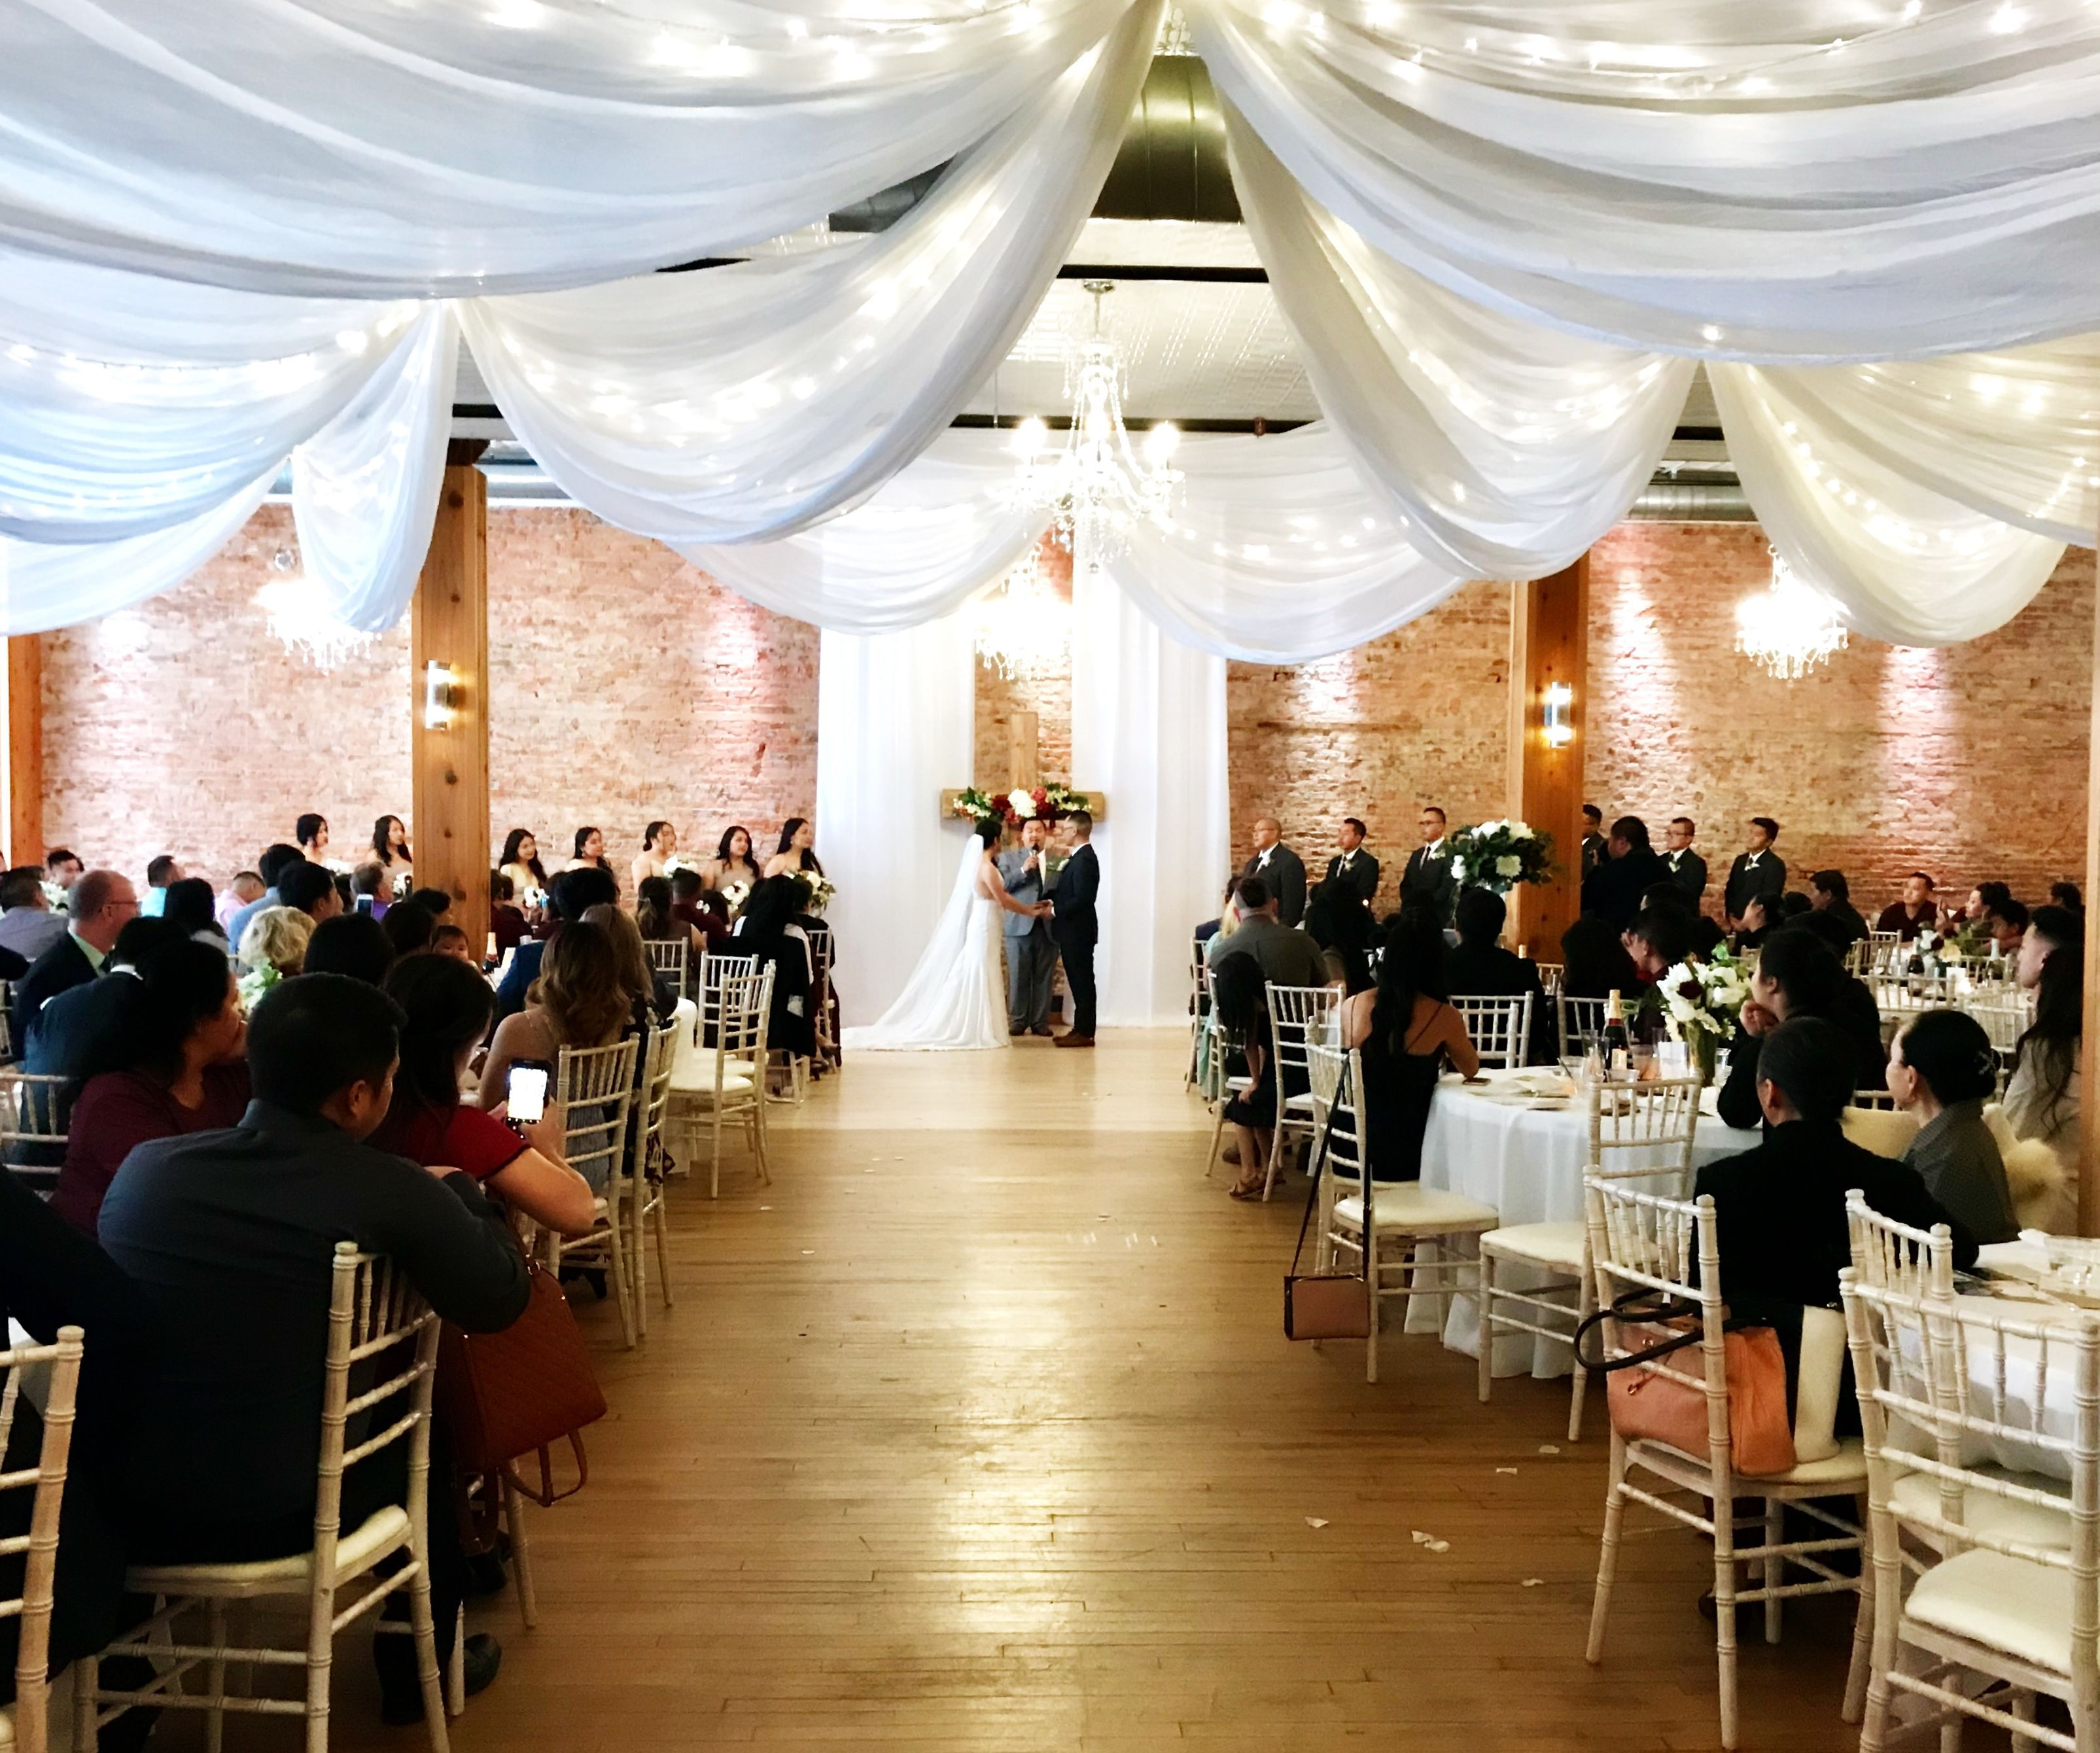 Just Two Beautiful Souls Spreading Love And Sharing Vows Ptlforever Weddingday Ceremony Love 3tenevent Wedding Reception Venues Venues Wedding Reception